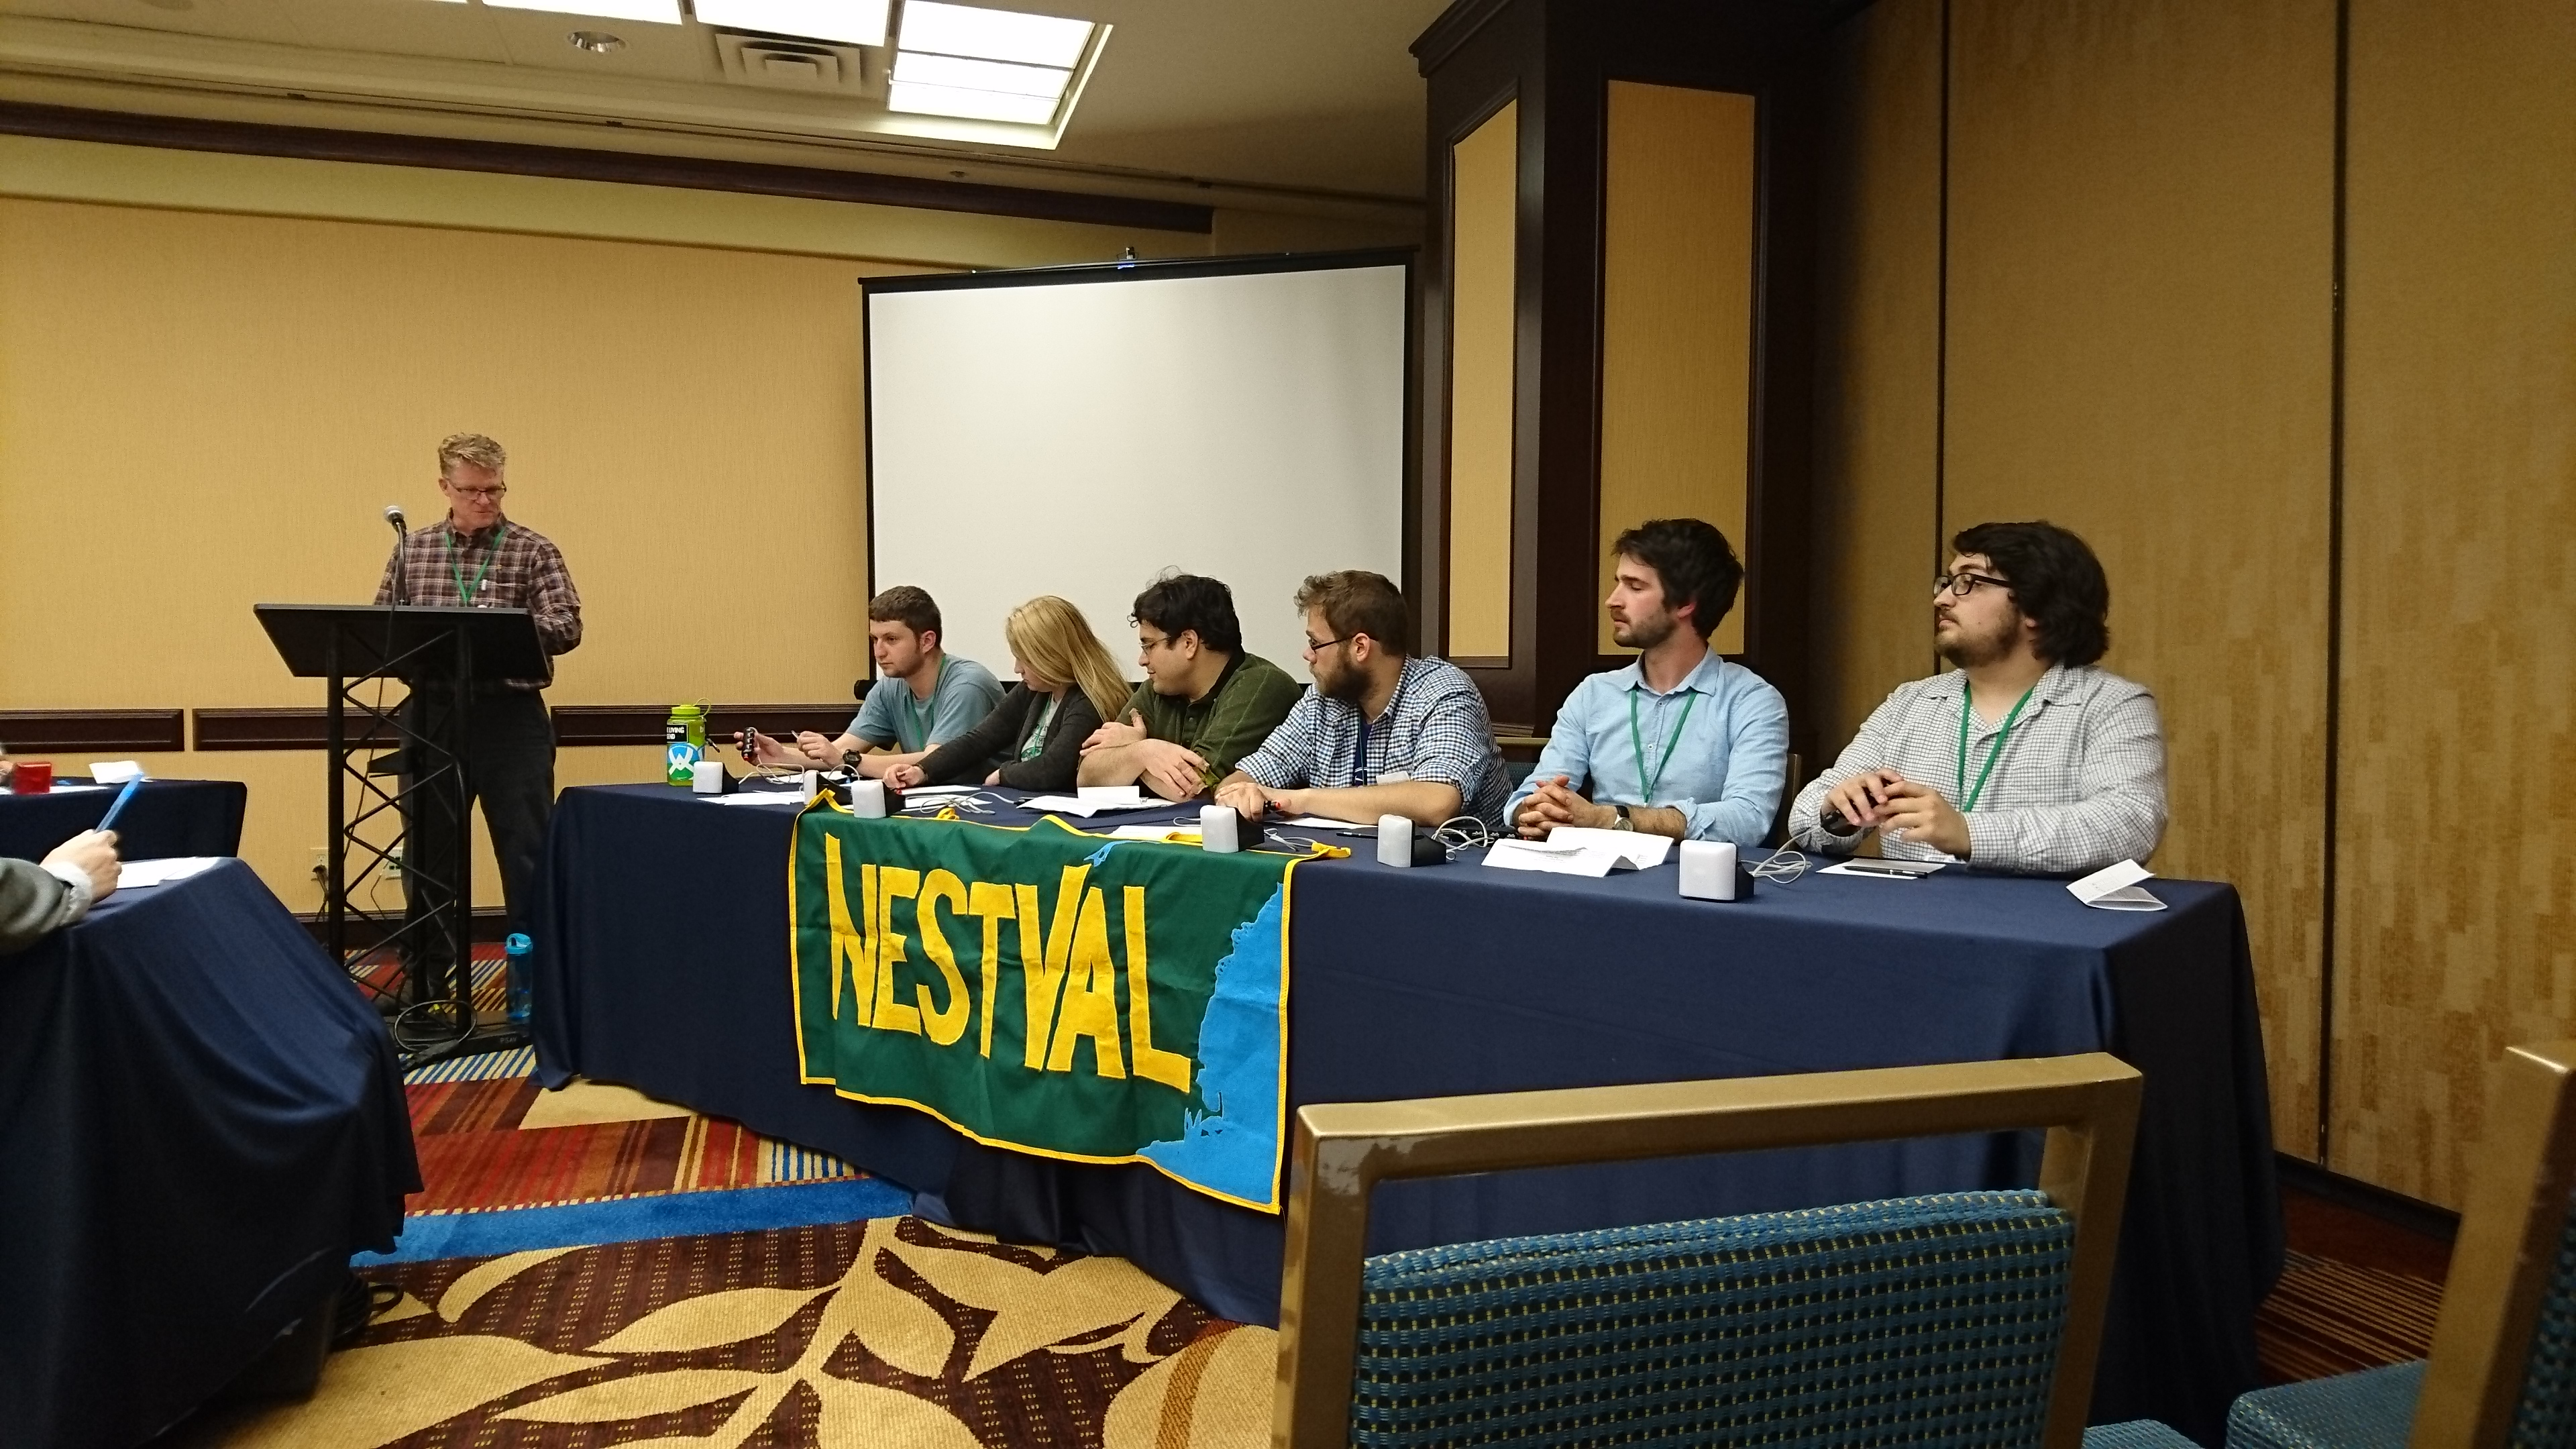 2016 World Geography Bowl, April 1, San Francisco. UMass geographers Julian Hartmann-Russell and Tyler Maren 2nd from right and far right